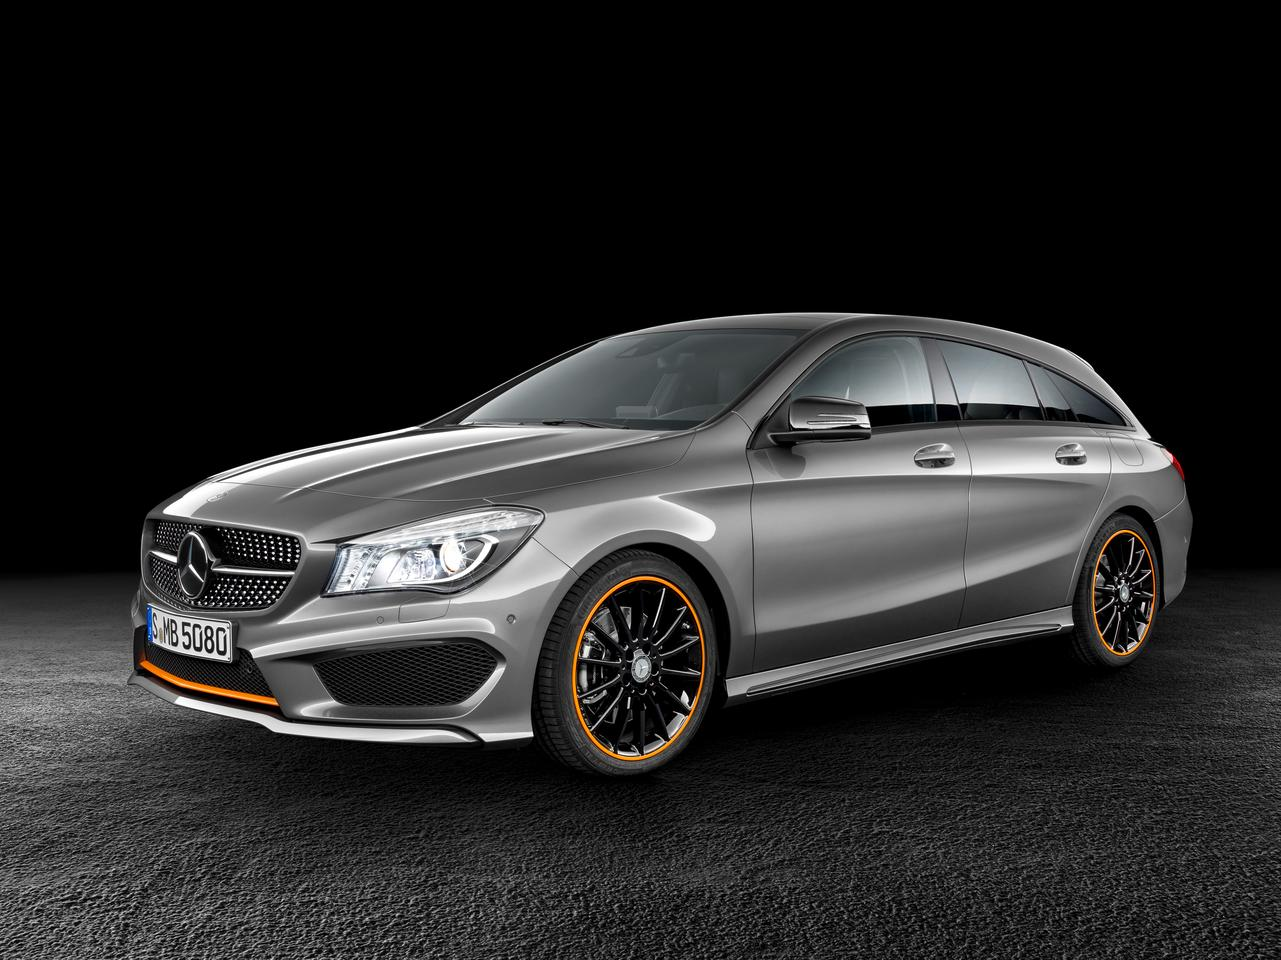 The Mercedes CLA Shooting Brake is a sleek wagon to join the four door coupe